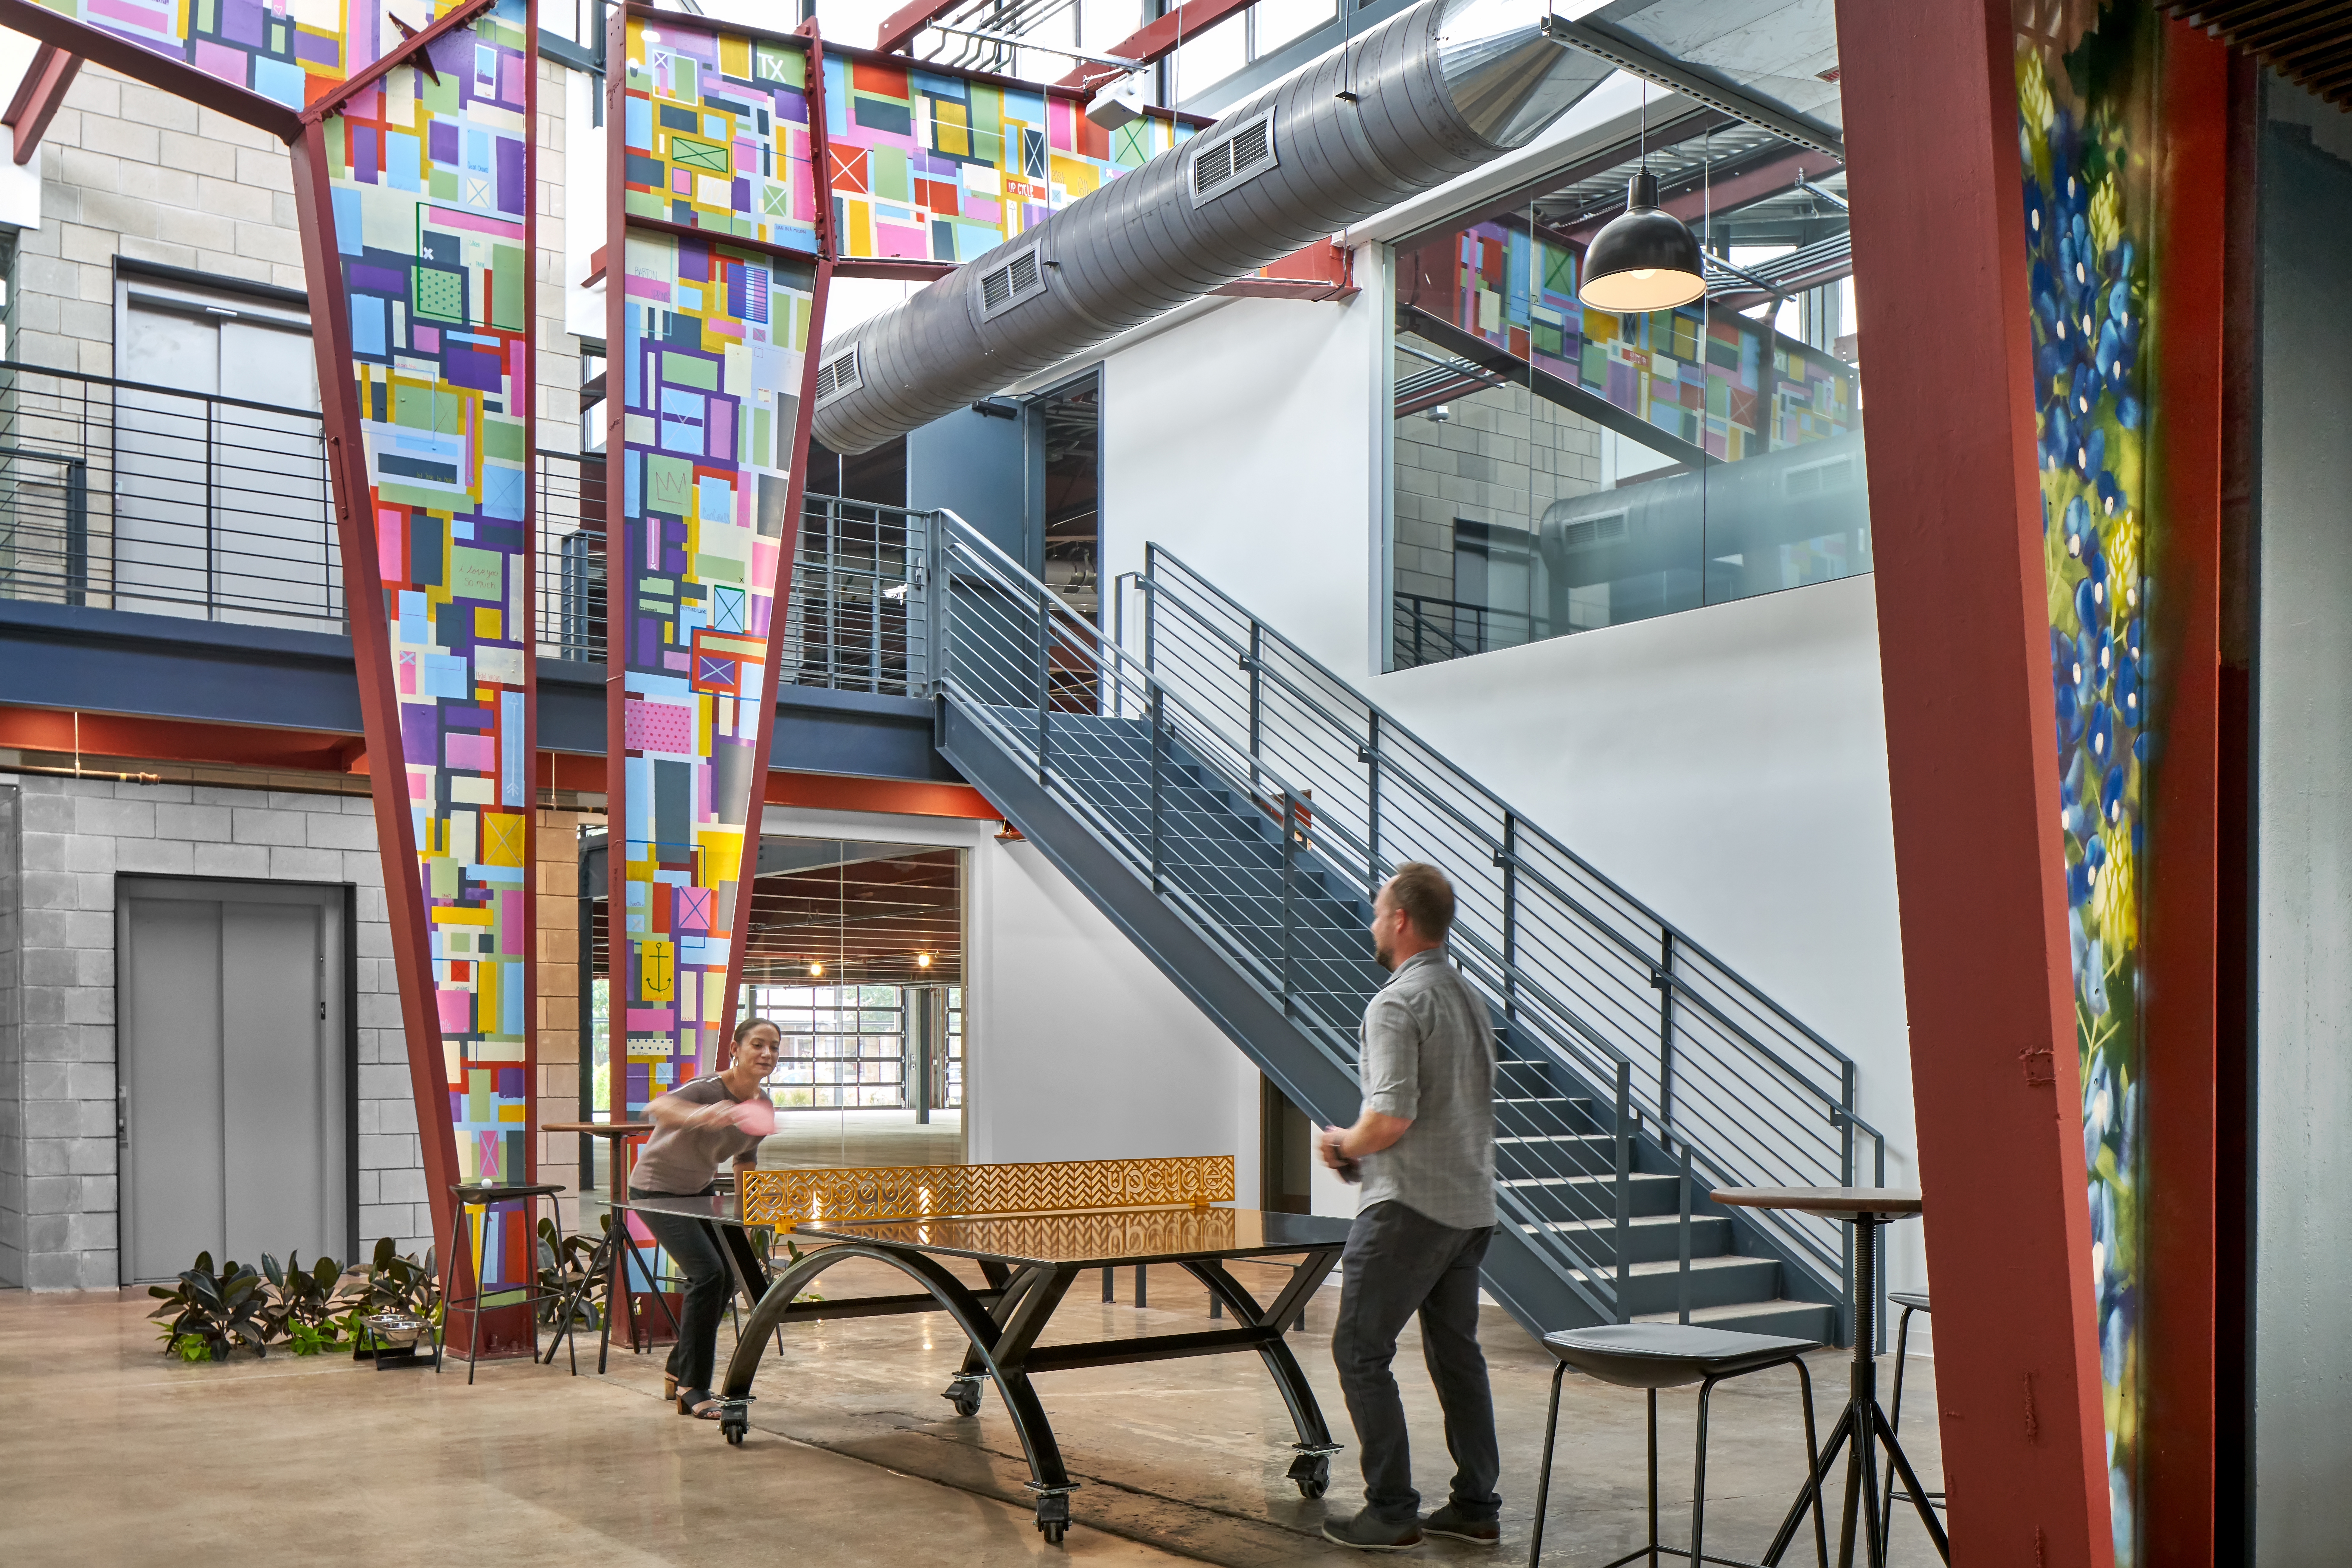 Large, open, two-story space with metal support columns painted colorfully, stairs, tables, chairs